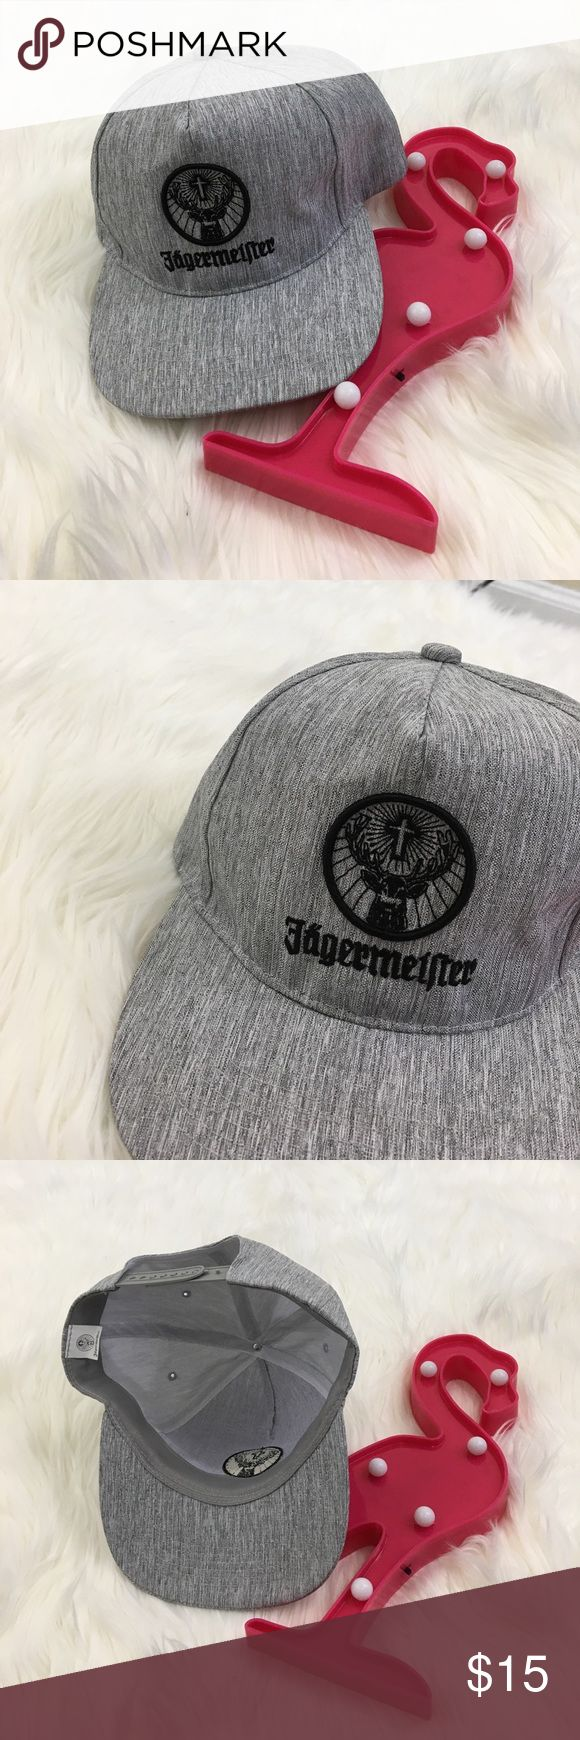 Jägermeister embroidered hat Pre-owned. In great condition. No flaws. One size fits all jägermeister Accessories Hats